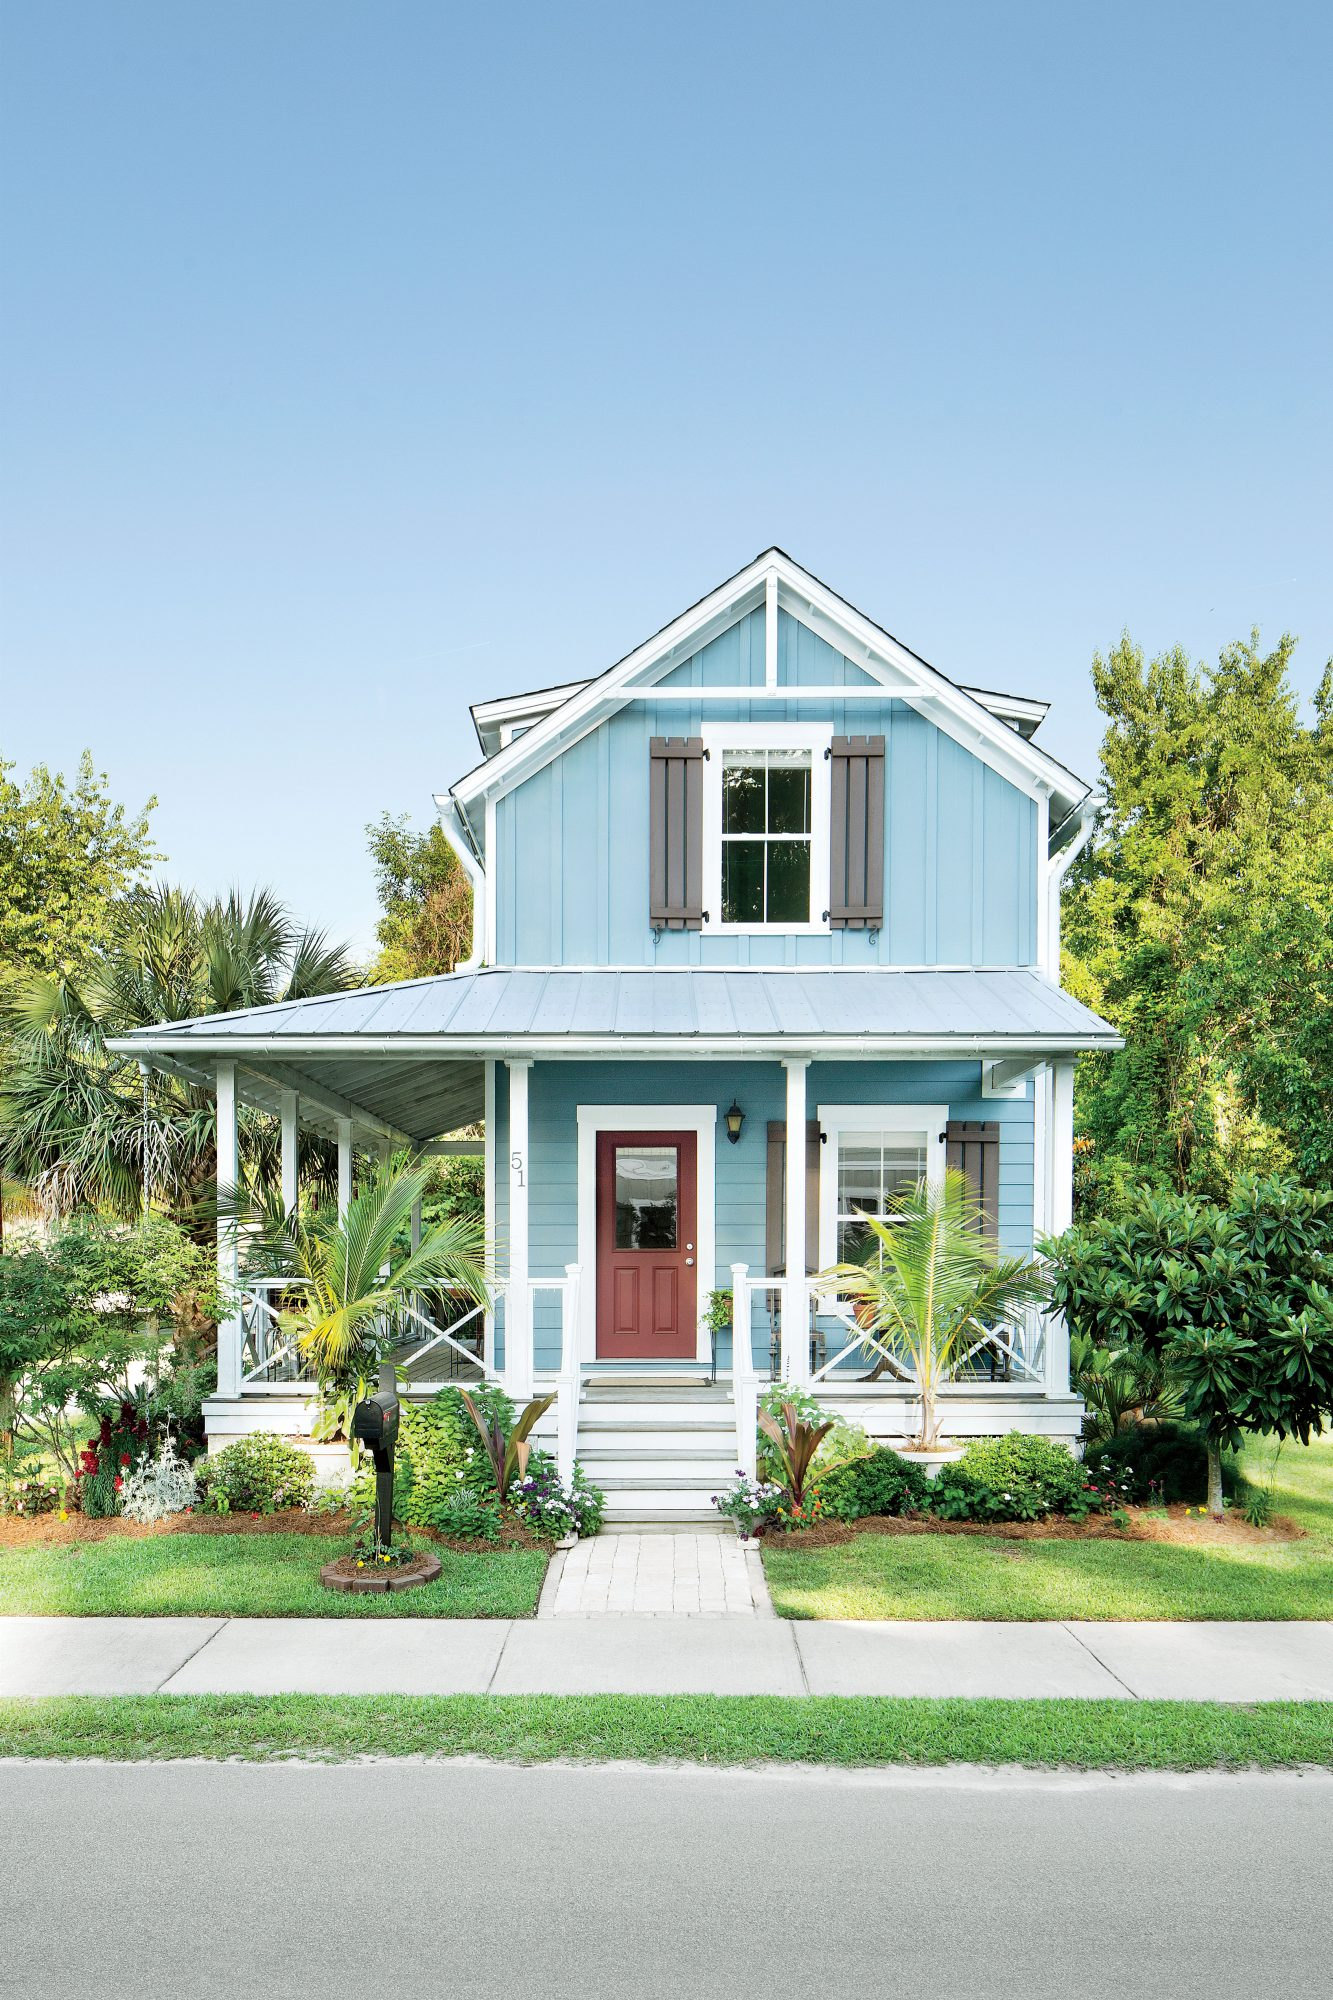 Wharf Street Community Bluffton South Carolina Blue House